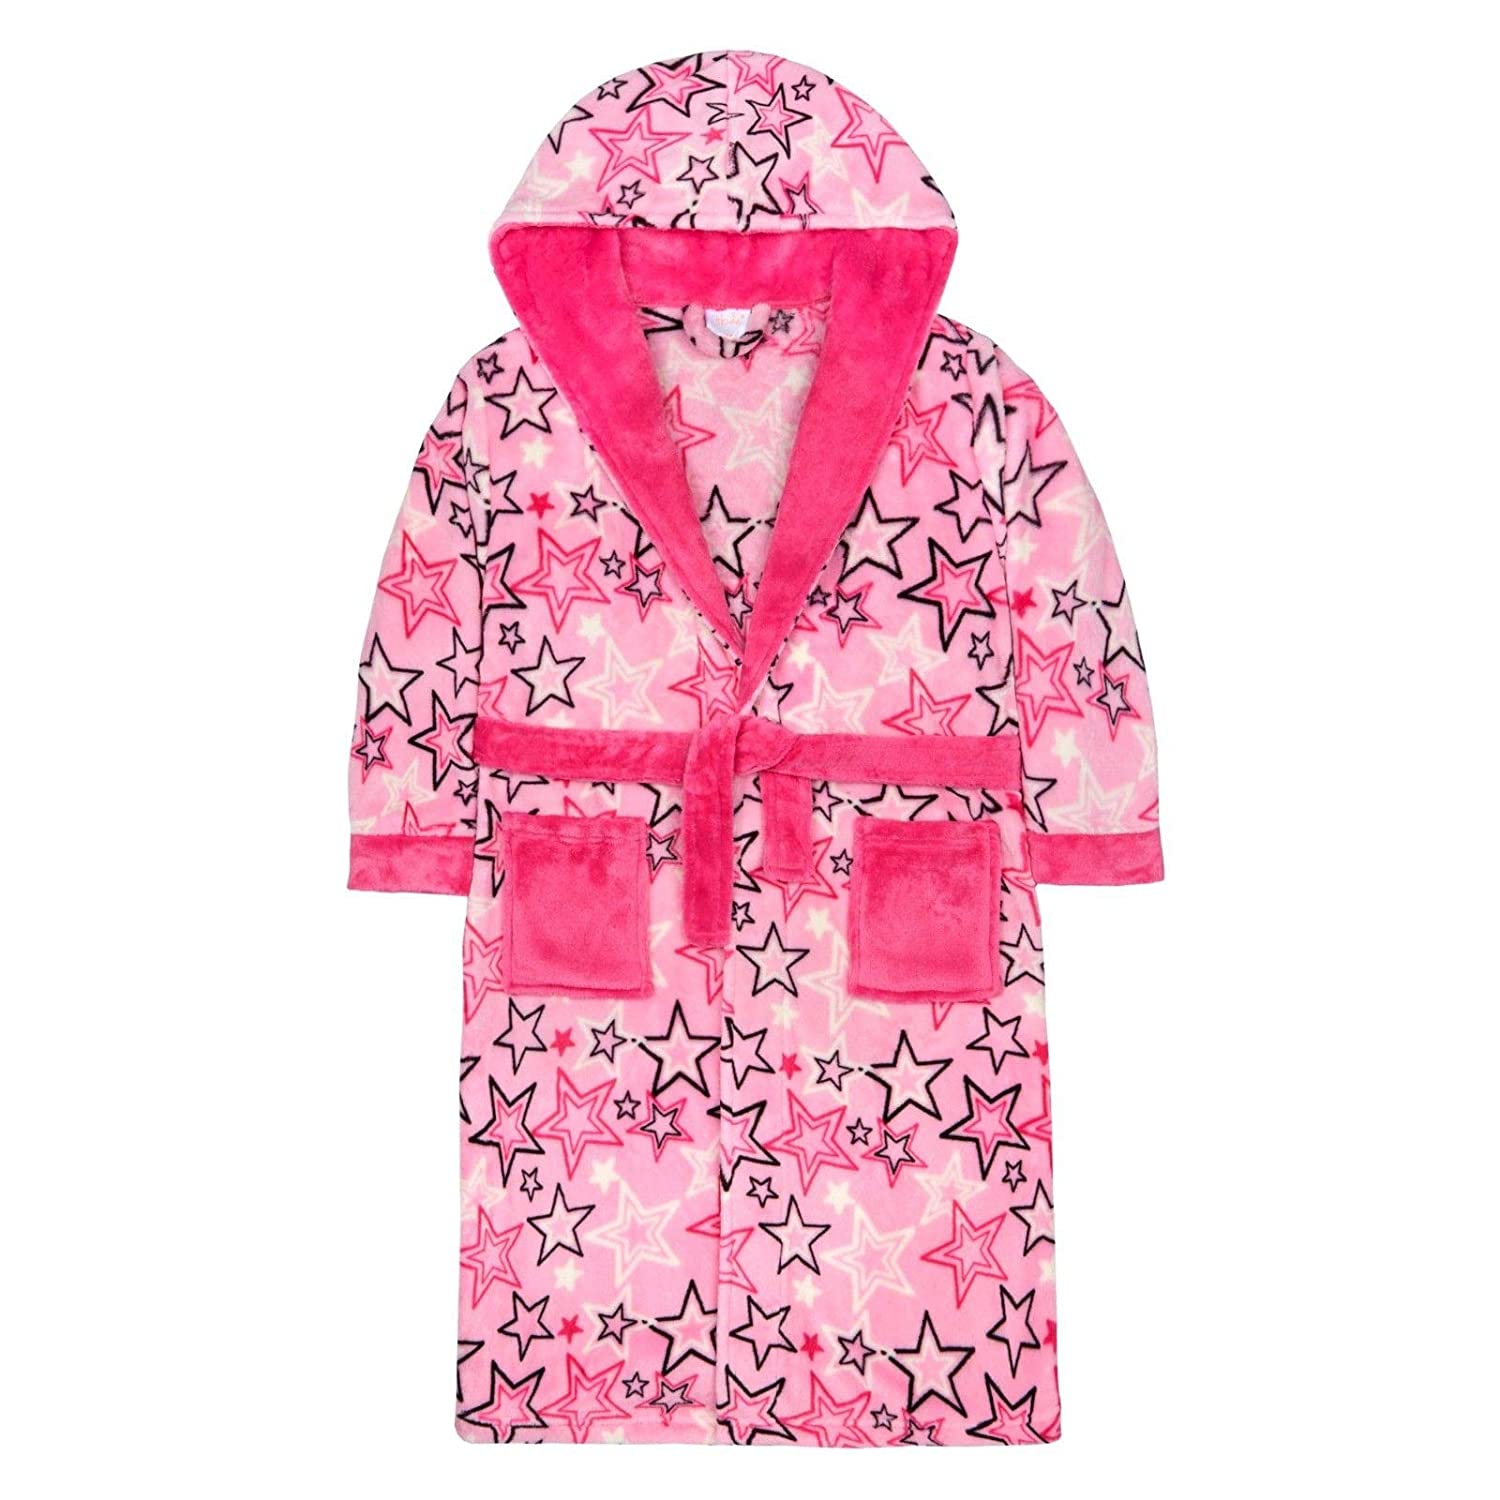 vedderluggage Thick & Cosy Girls Star Pink Hooded Robe Dressing Gown Teens Teenager Xmas Gift